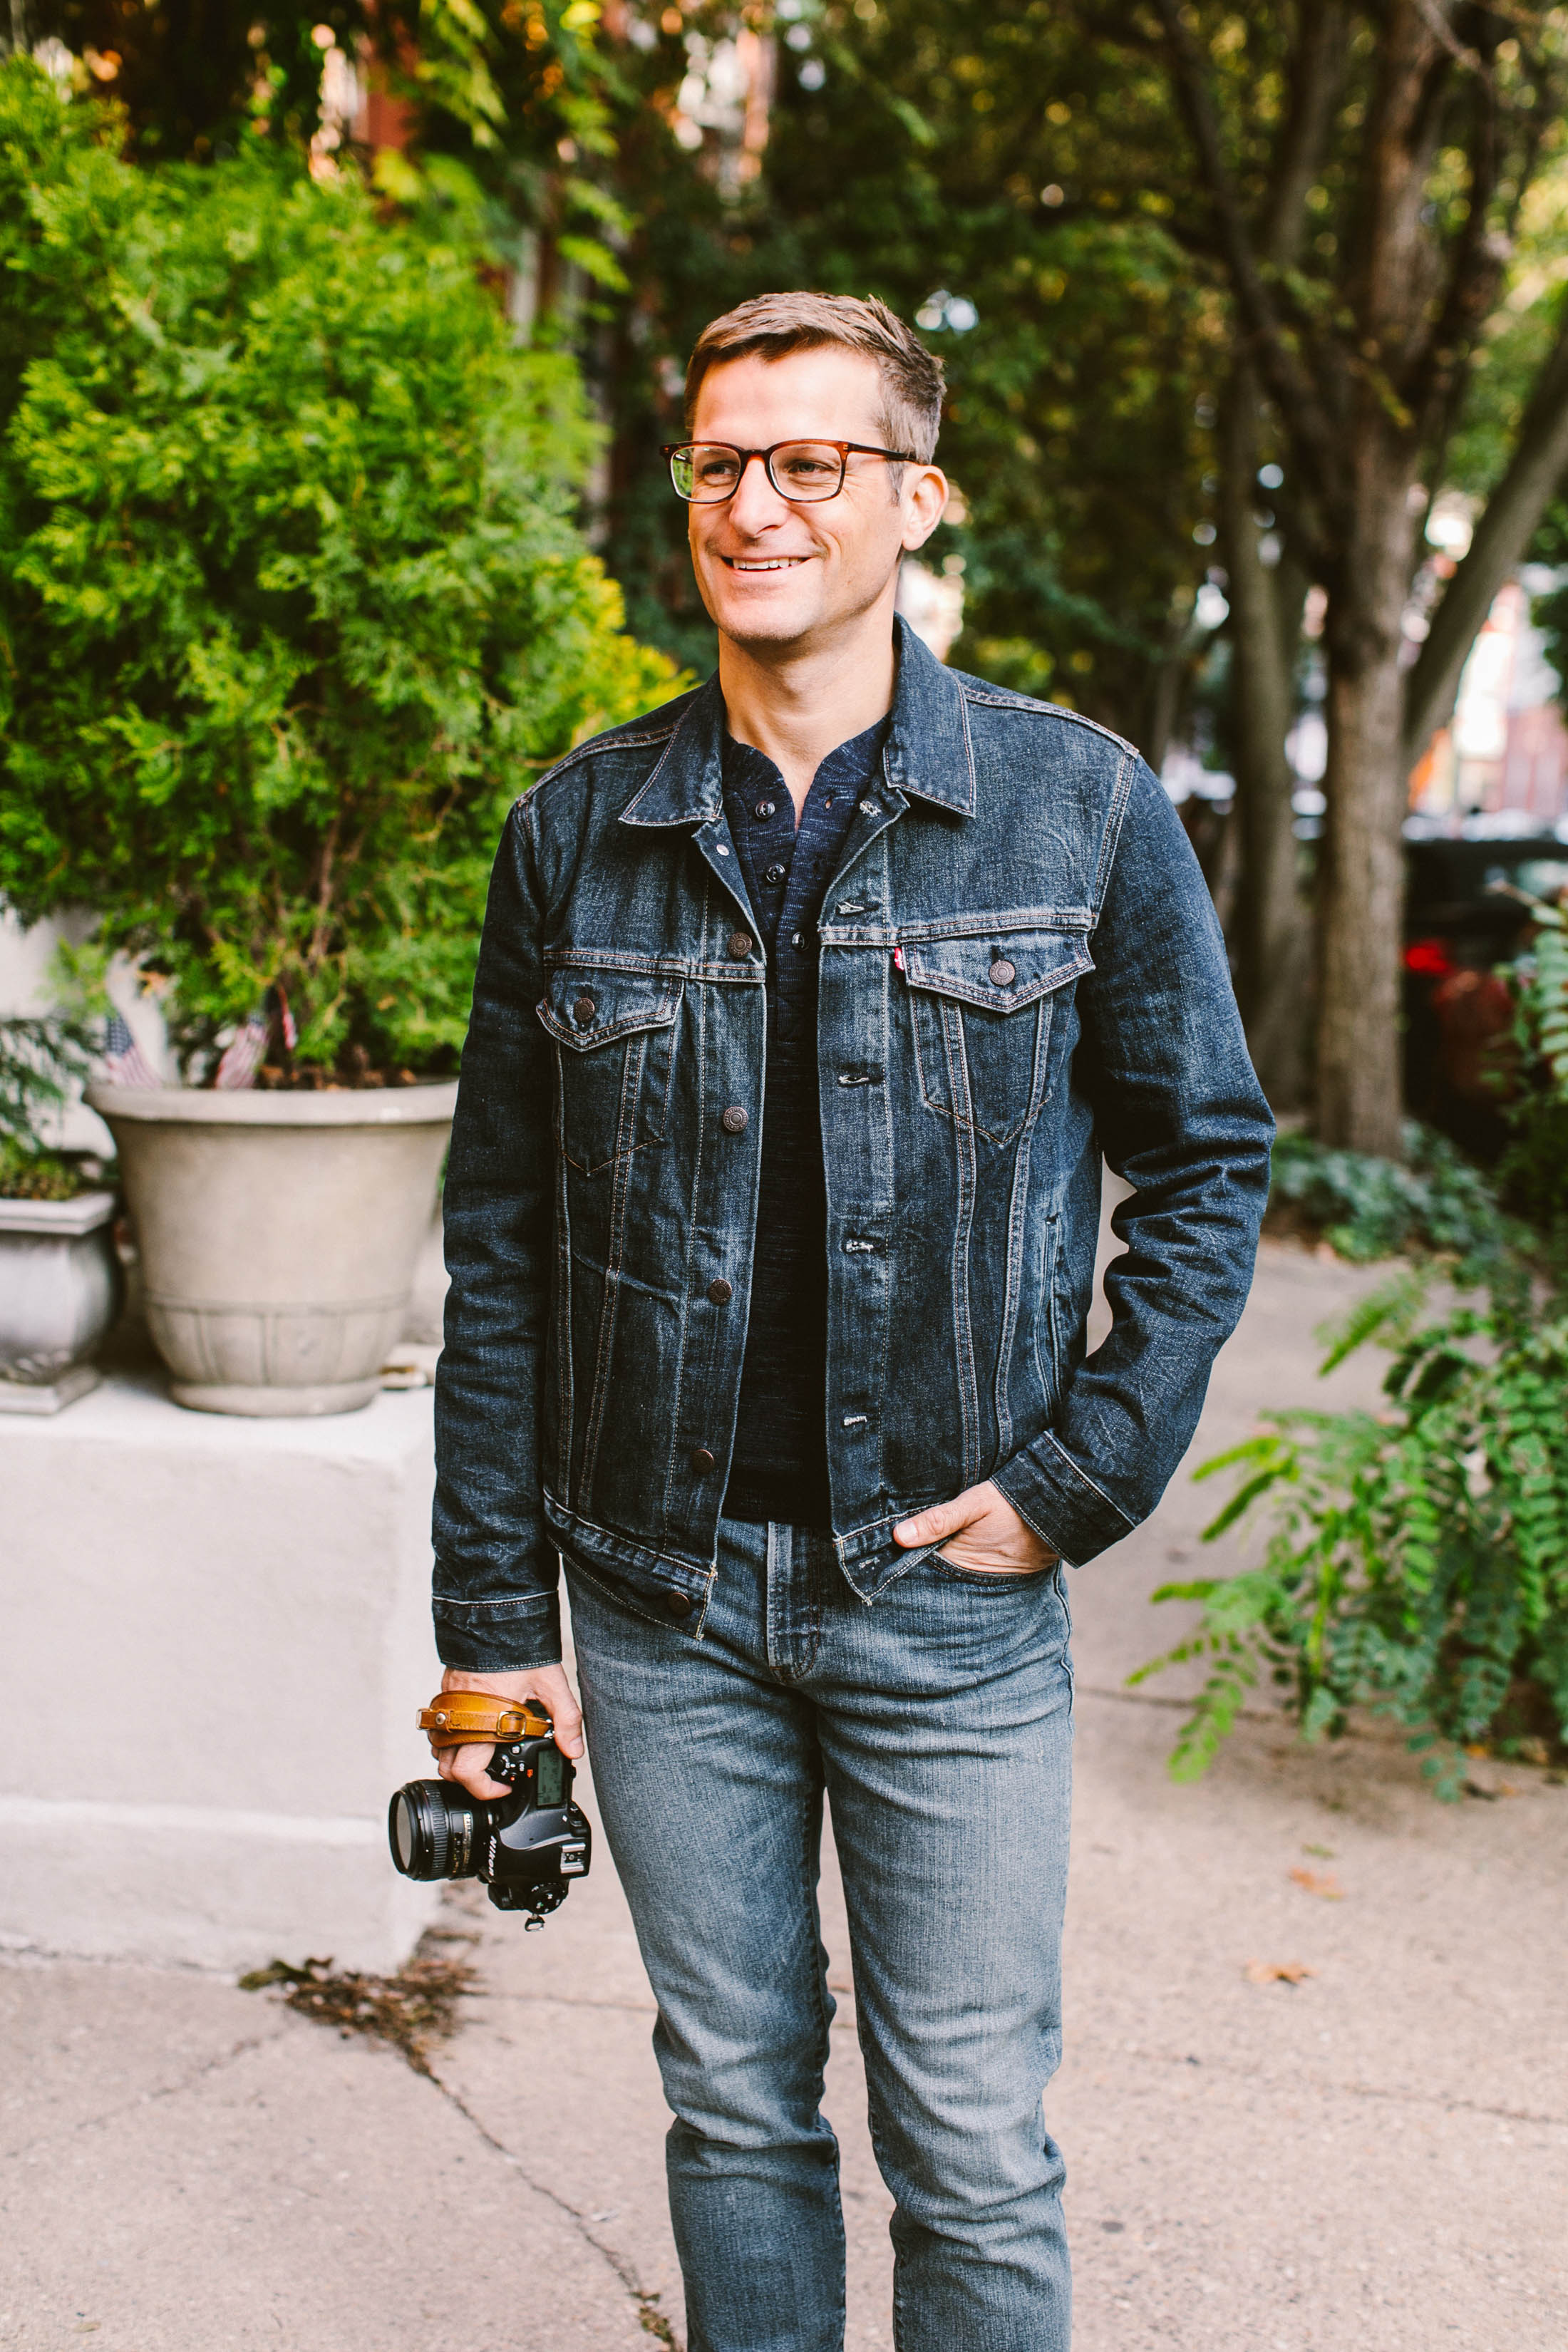 Jean jackets are a staple in all of our wardrobes, right? We think men should have 1 too. Here's why we swear by this versatile denim piece.